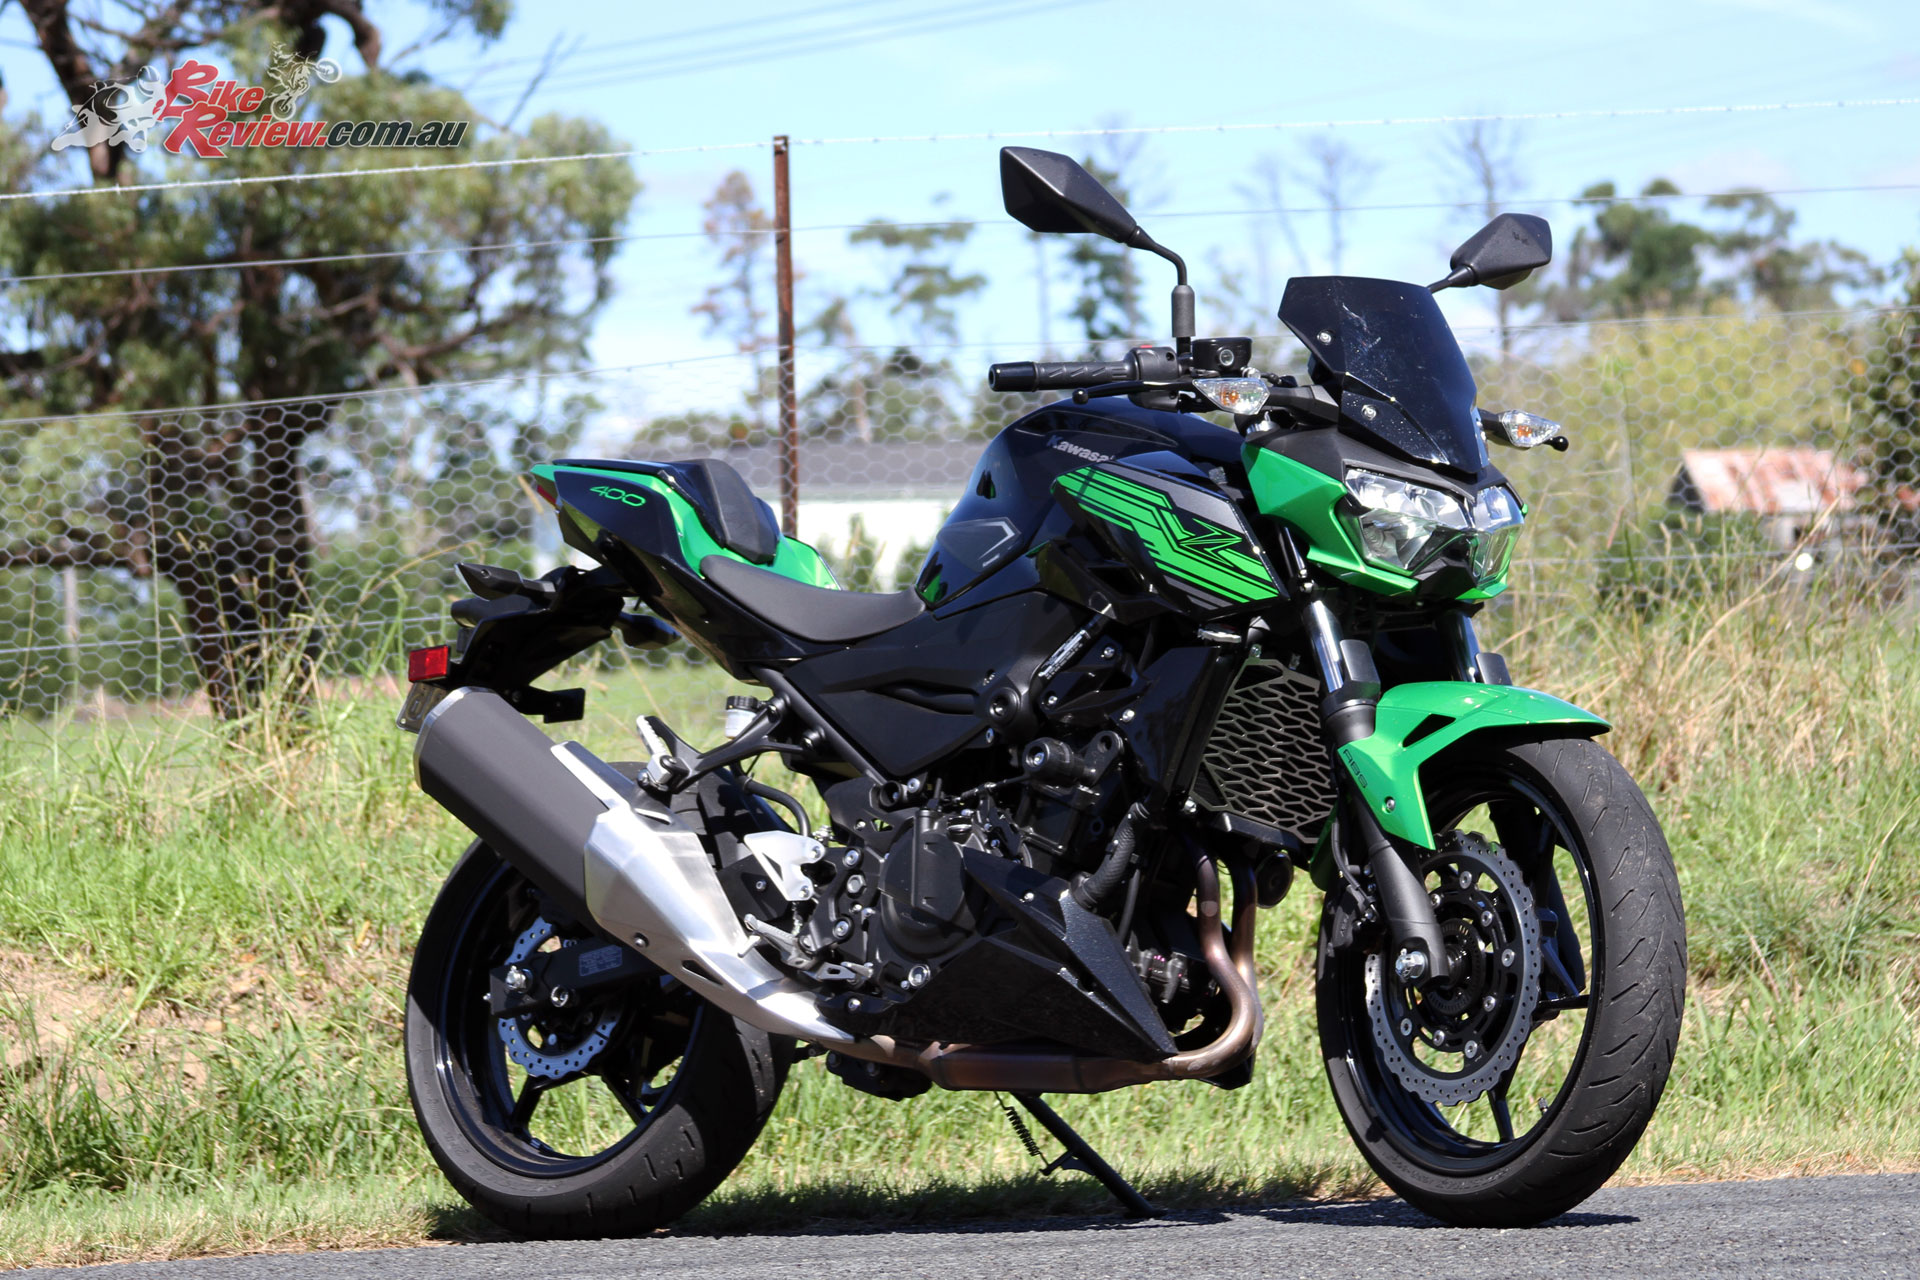 Kawasaki's Z400 offers the performance of the Ninja 400 in a new nakedbike version, massively updating the Z300